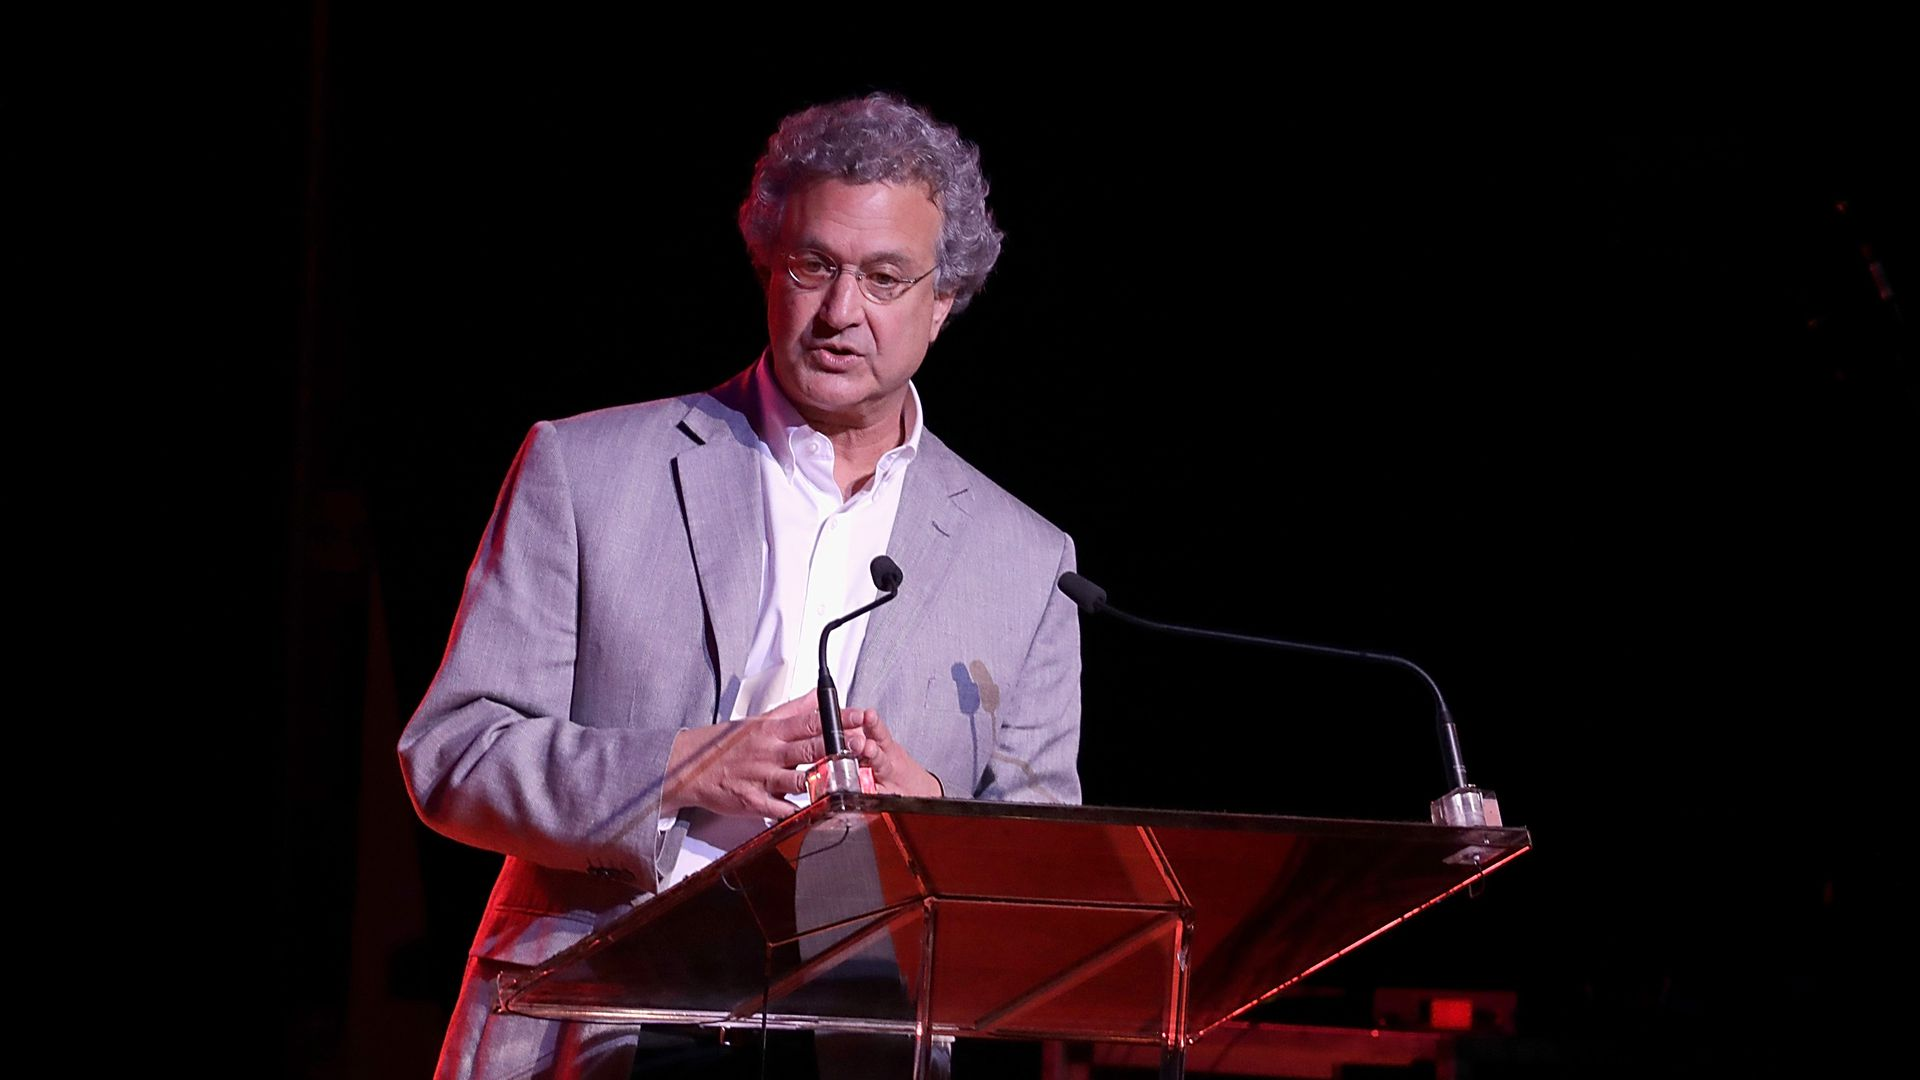 Three leadership positions have turned over in the last few weeks at the Southern Poverty Law Center